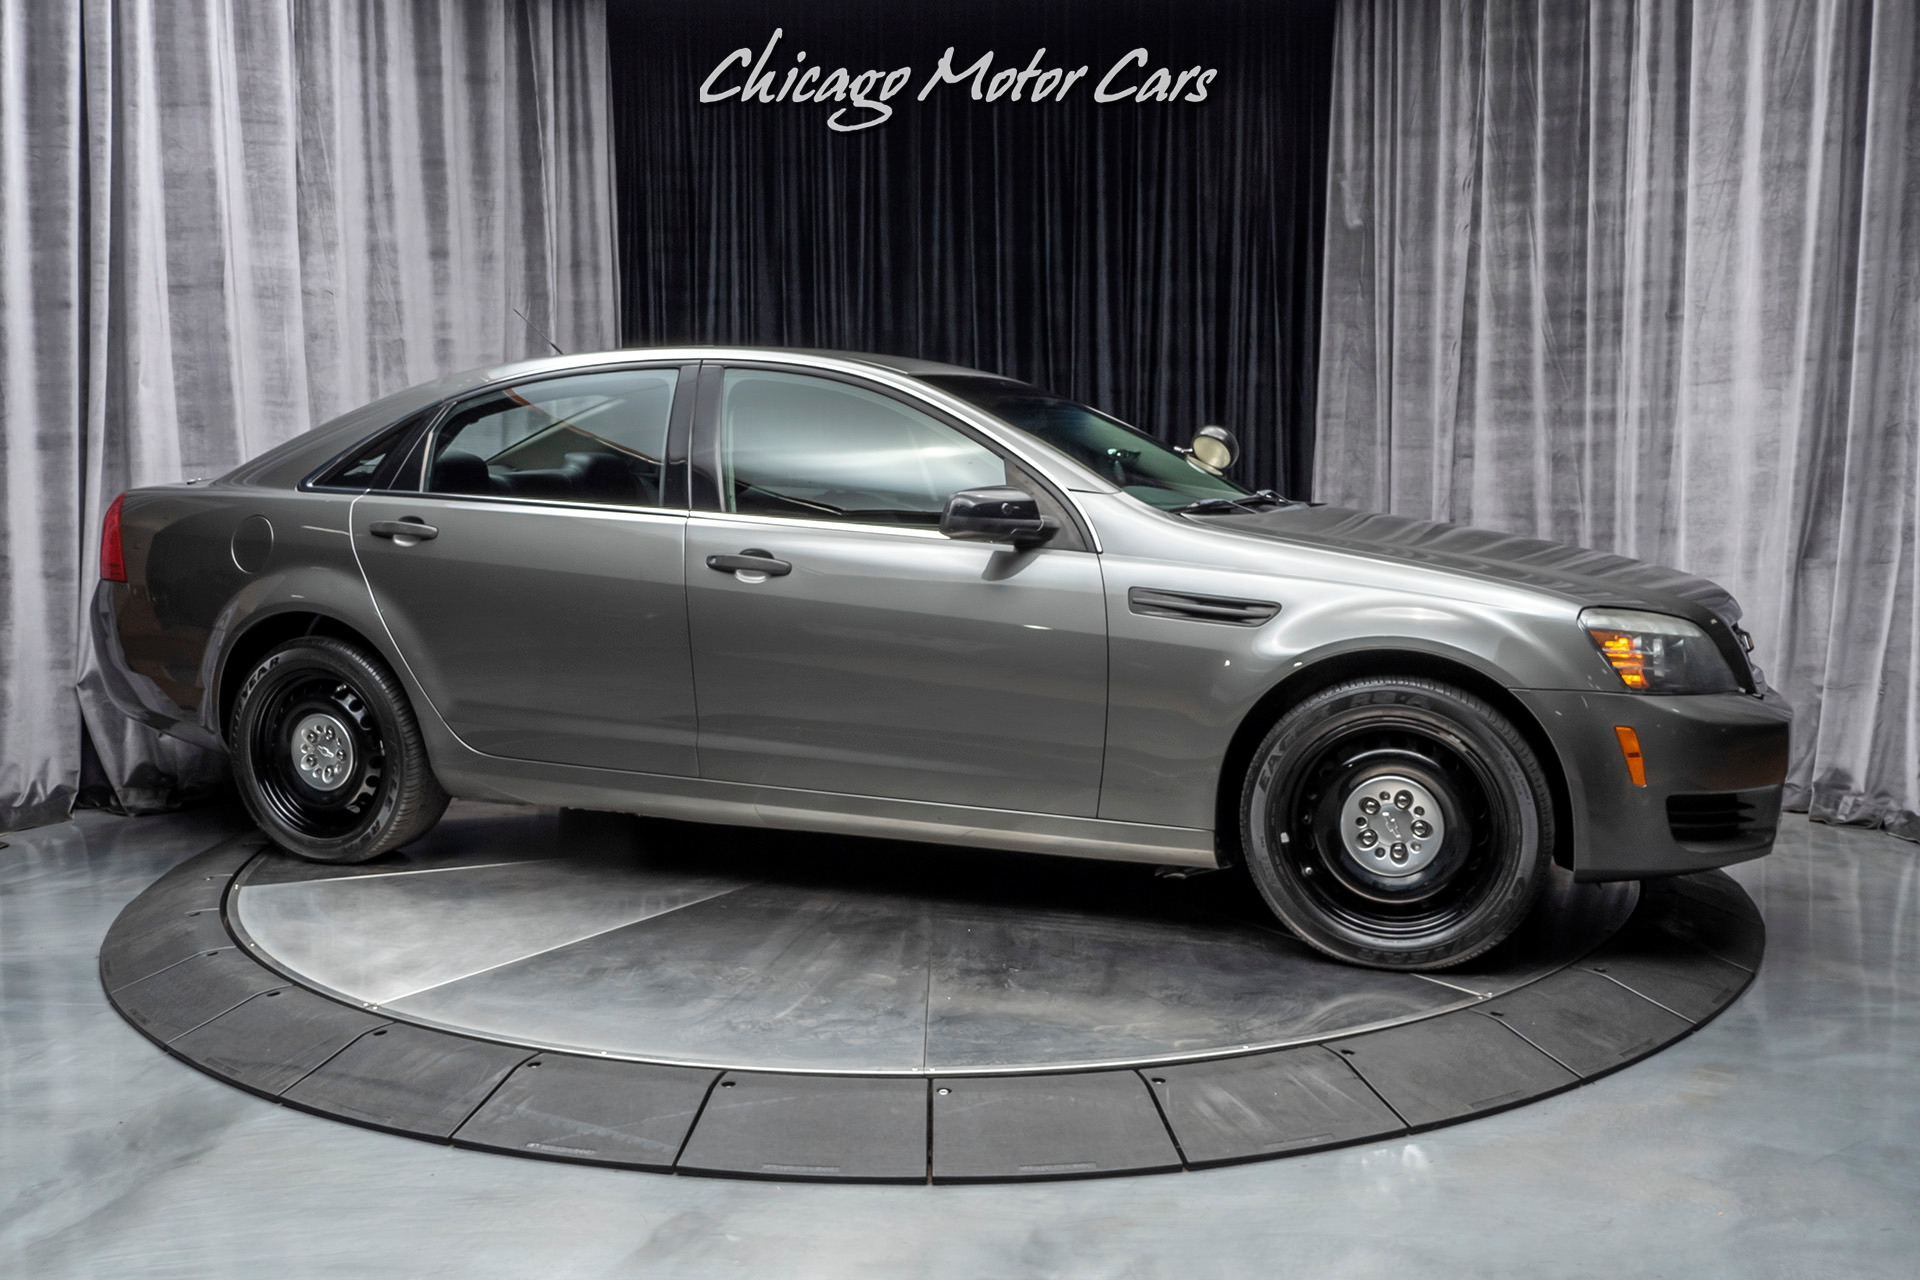 Used 2012 Chevrolet Caprice Ppv 9c1 6 0 Police Sedan For Sale Special Pricing Chicago Motor Cars Stock 16338